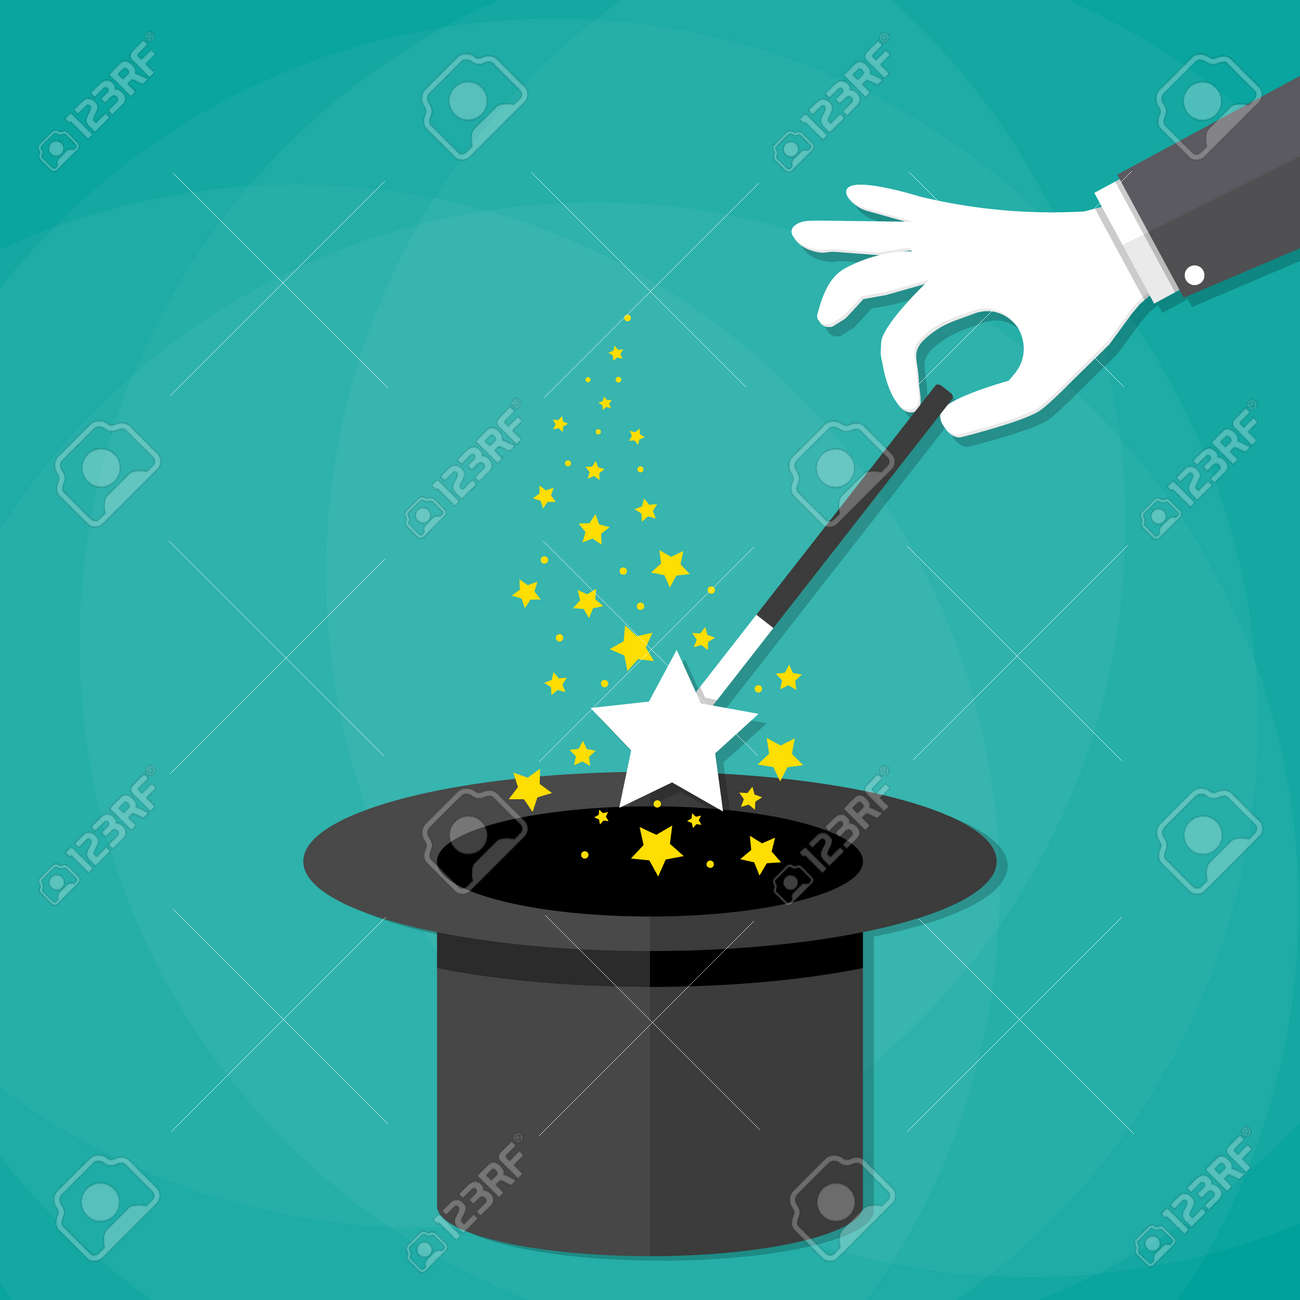 Black gloves white magic - Cartoon Magicians Hands In White Gloves Holding A Magic Wand With Stars Sparks Above Black Magic